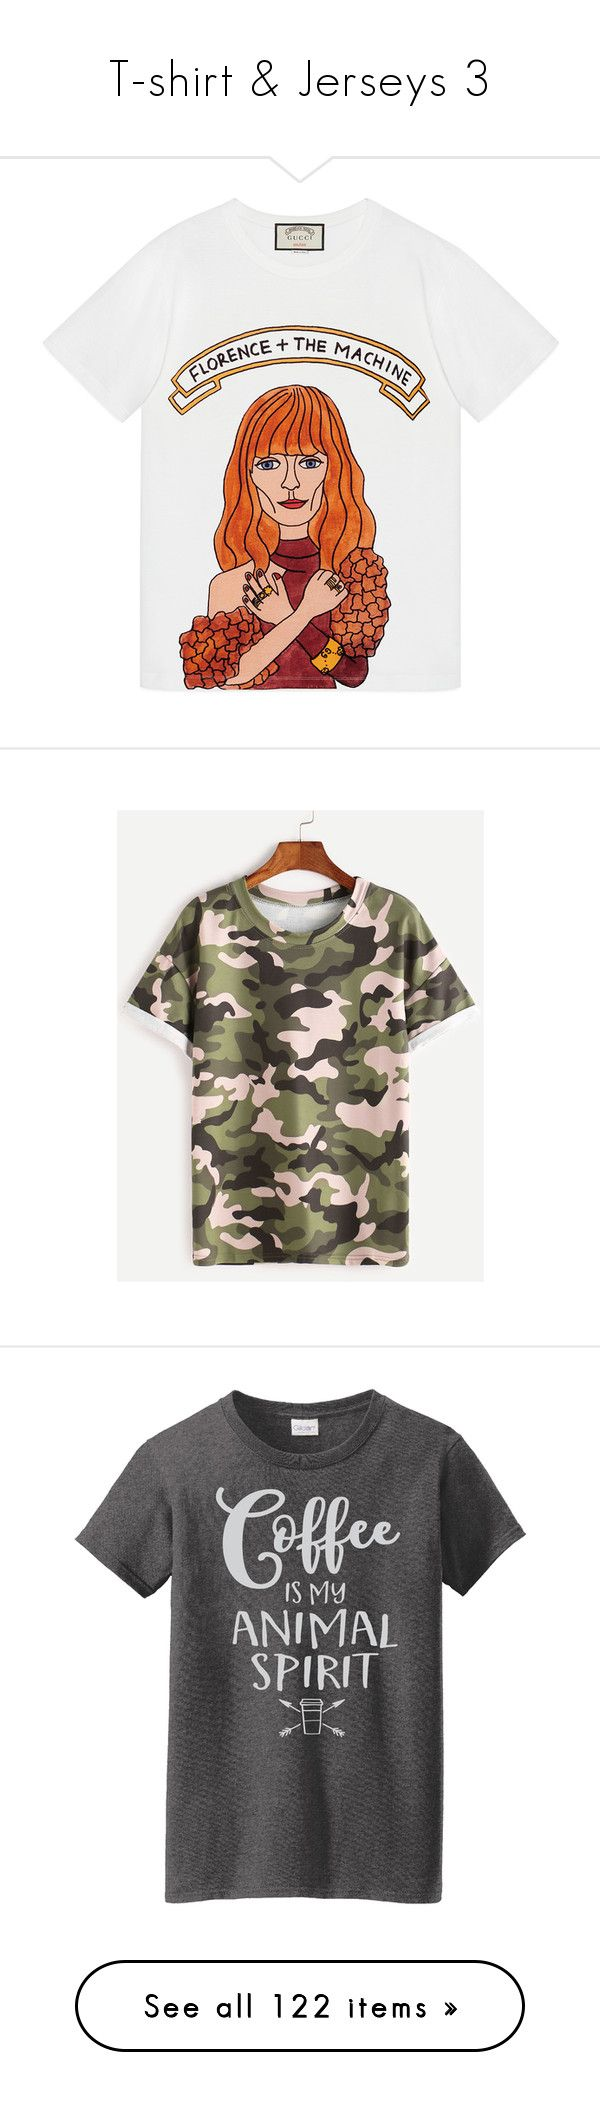 """""""T-shirt & Jerseys 3"""" by michal100-15-4 ❤ liked on Polyvore featuring tops, t-shirts, shirts, tees, folding shirts, t shirts, folding t shirts, print t shirts, pattern t shirt and camoflage t shirt"""